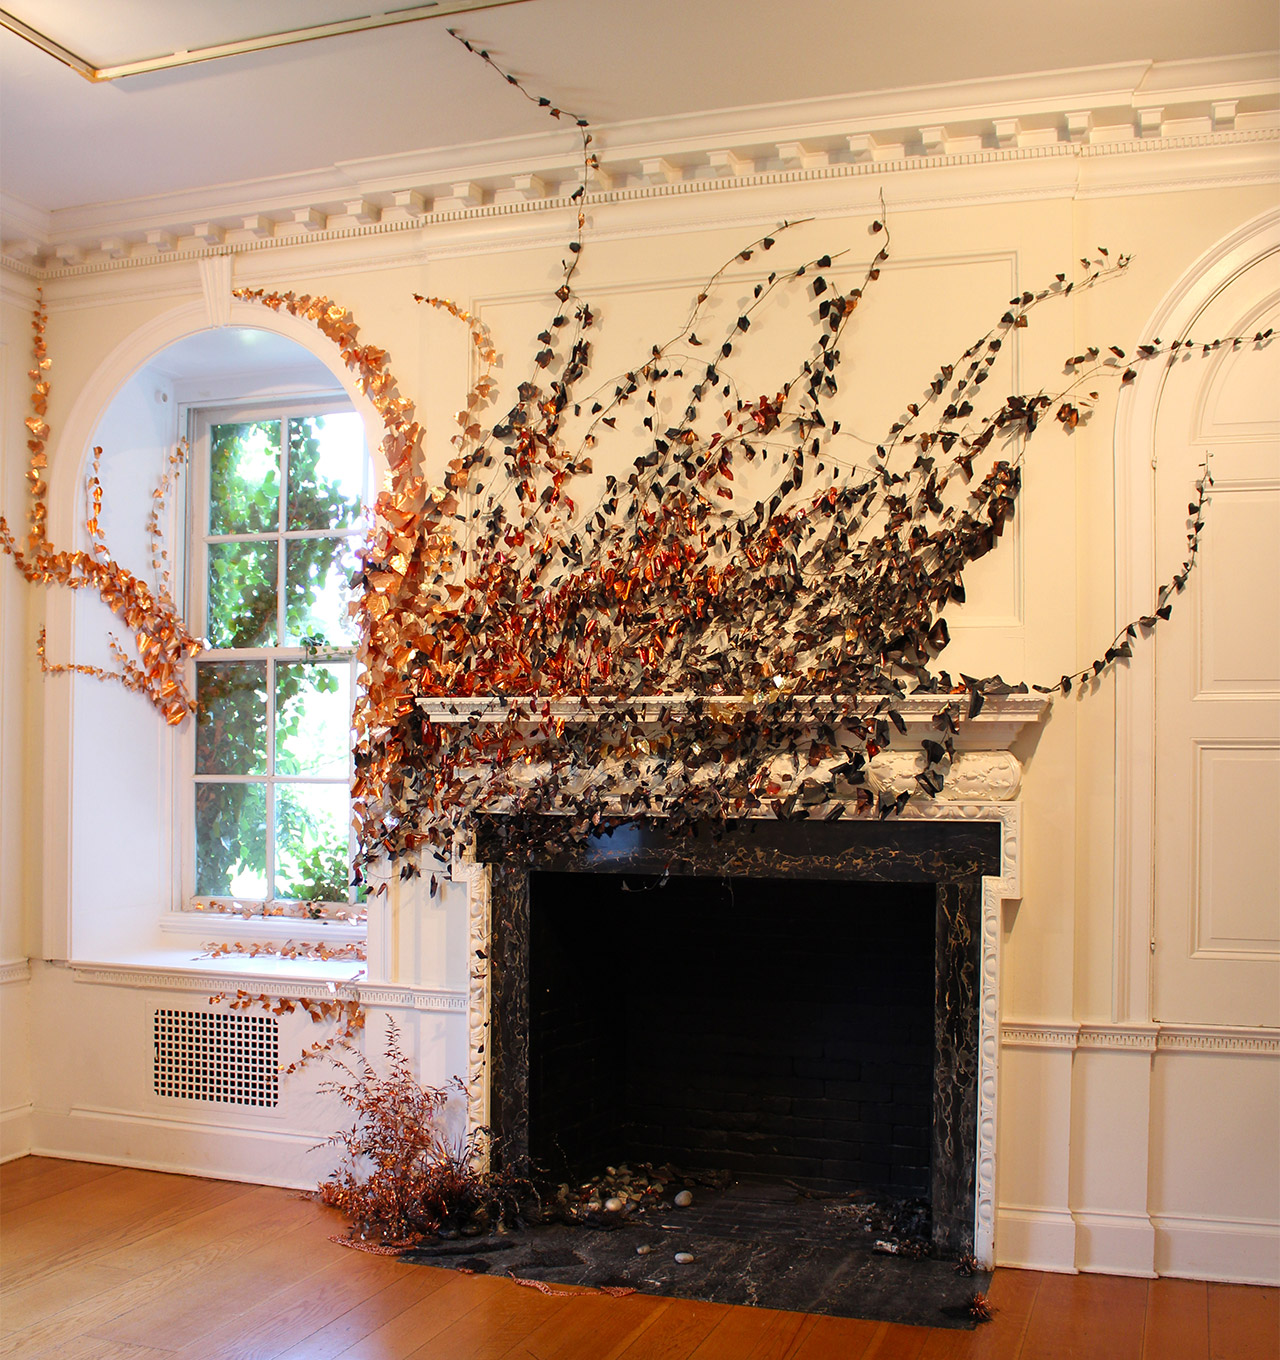 """Anne Peabody, """"Wildfire"""" (2015), copper, wood, and glass from 'Wrath' at Wave Hill"""